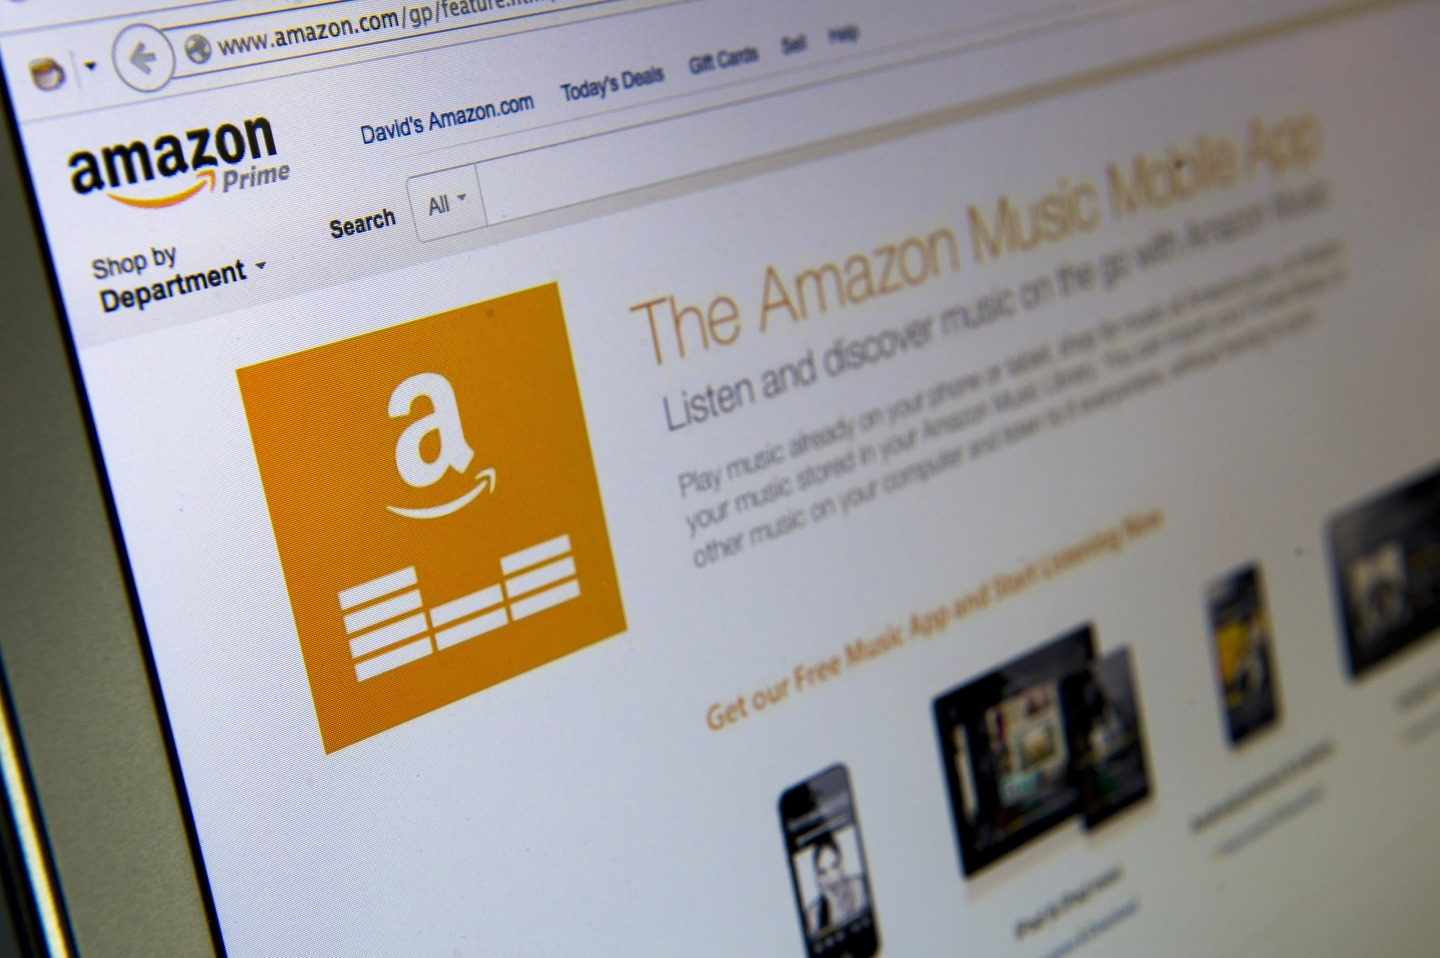 bloomberg.com - Spencer Soper - Amazon to Launch Mobile Ads, in a Threat to Google and Facebook